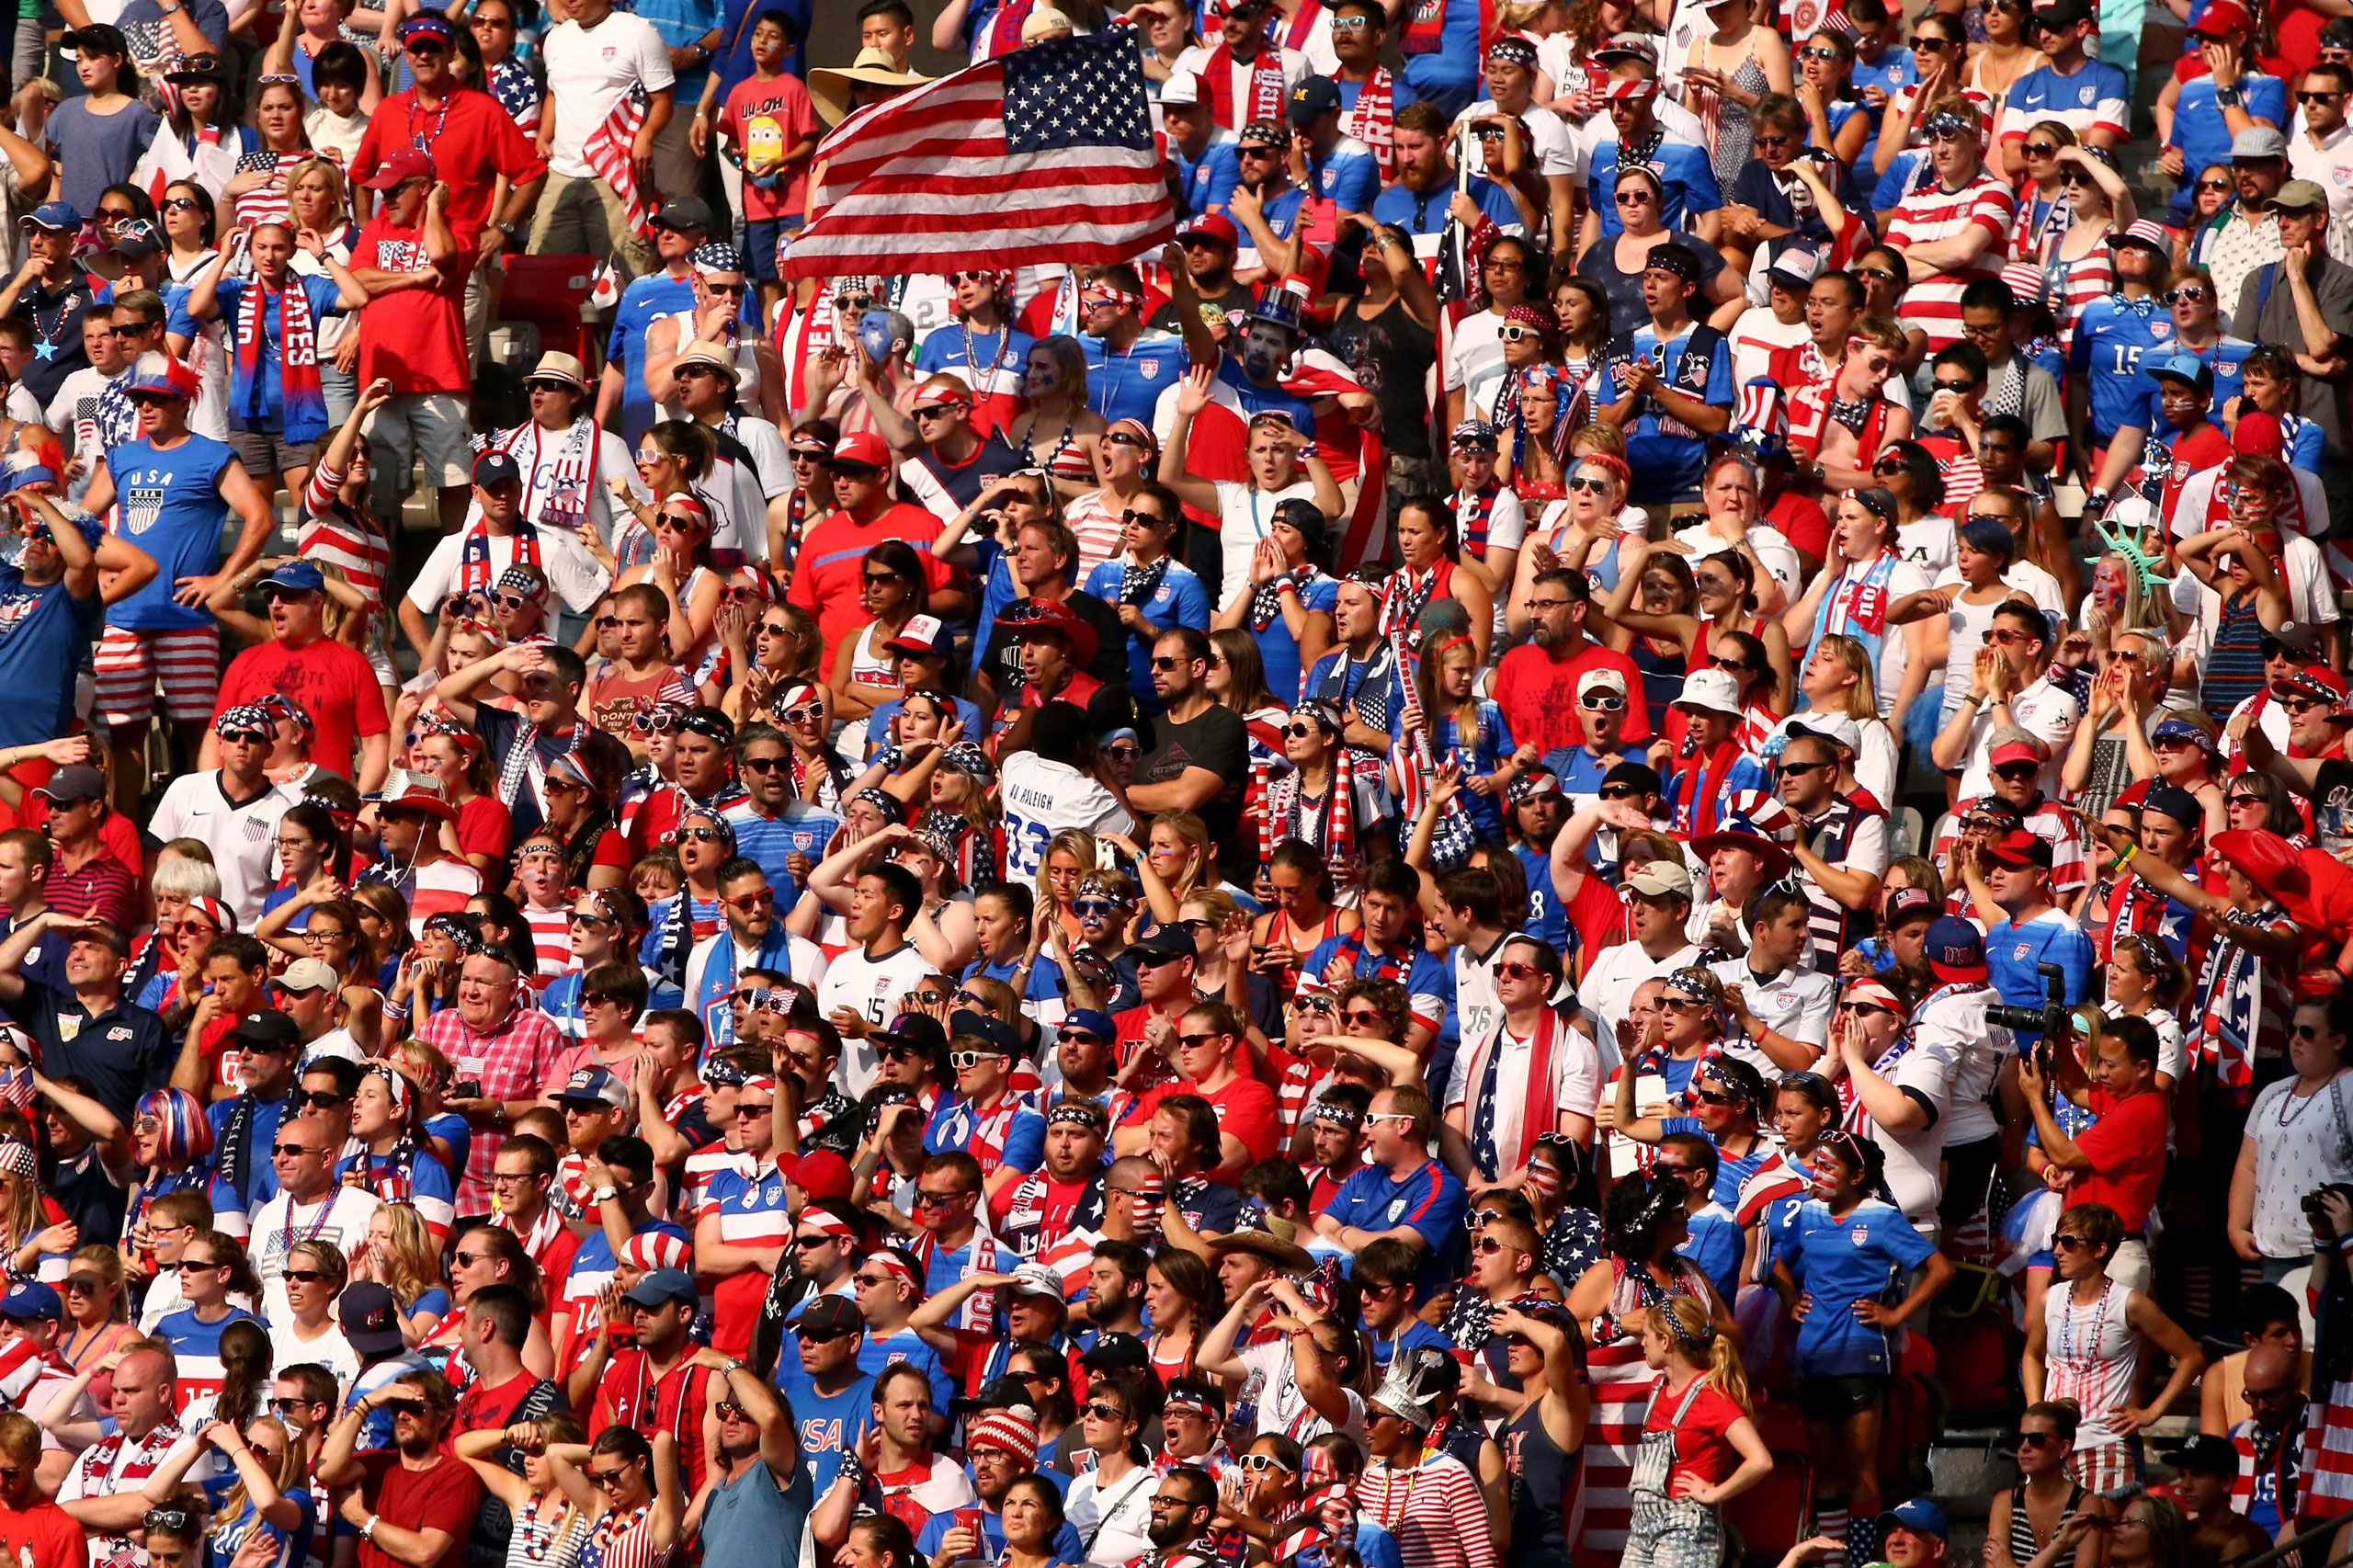 Fans cheer in the second half of the match between the U.S. and Japan, in the 2015 FIFA Women's World Cup at the BC Place Stadium in Vancouver on July 5, 2015.